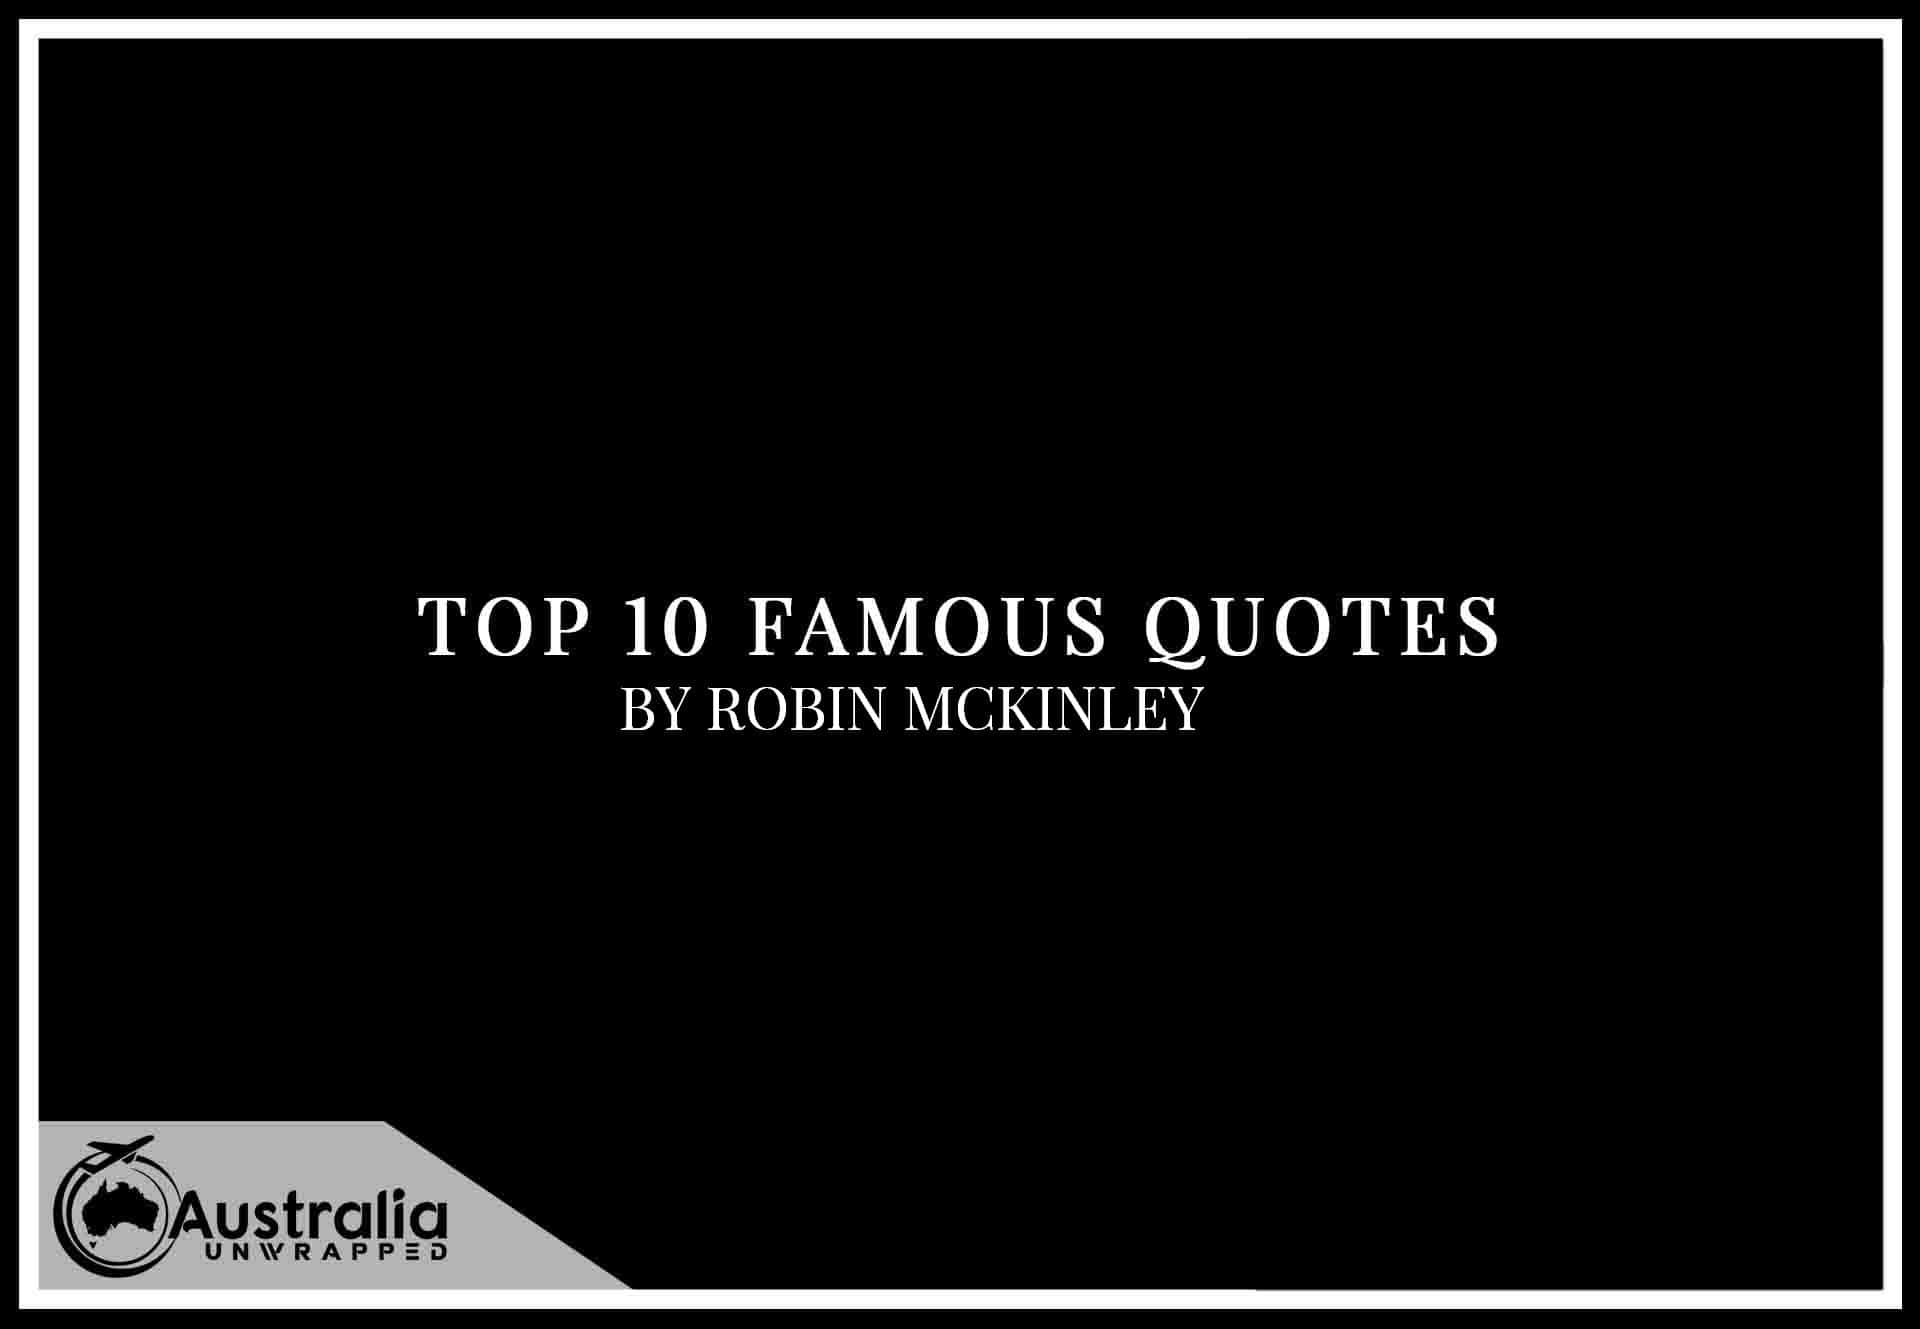 Top 10 Famous Quotes by Author Robin McKinley